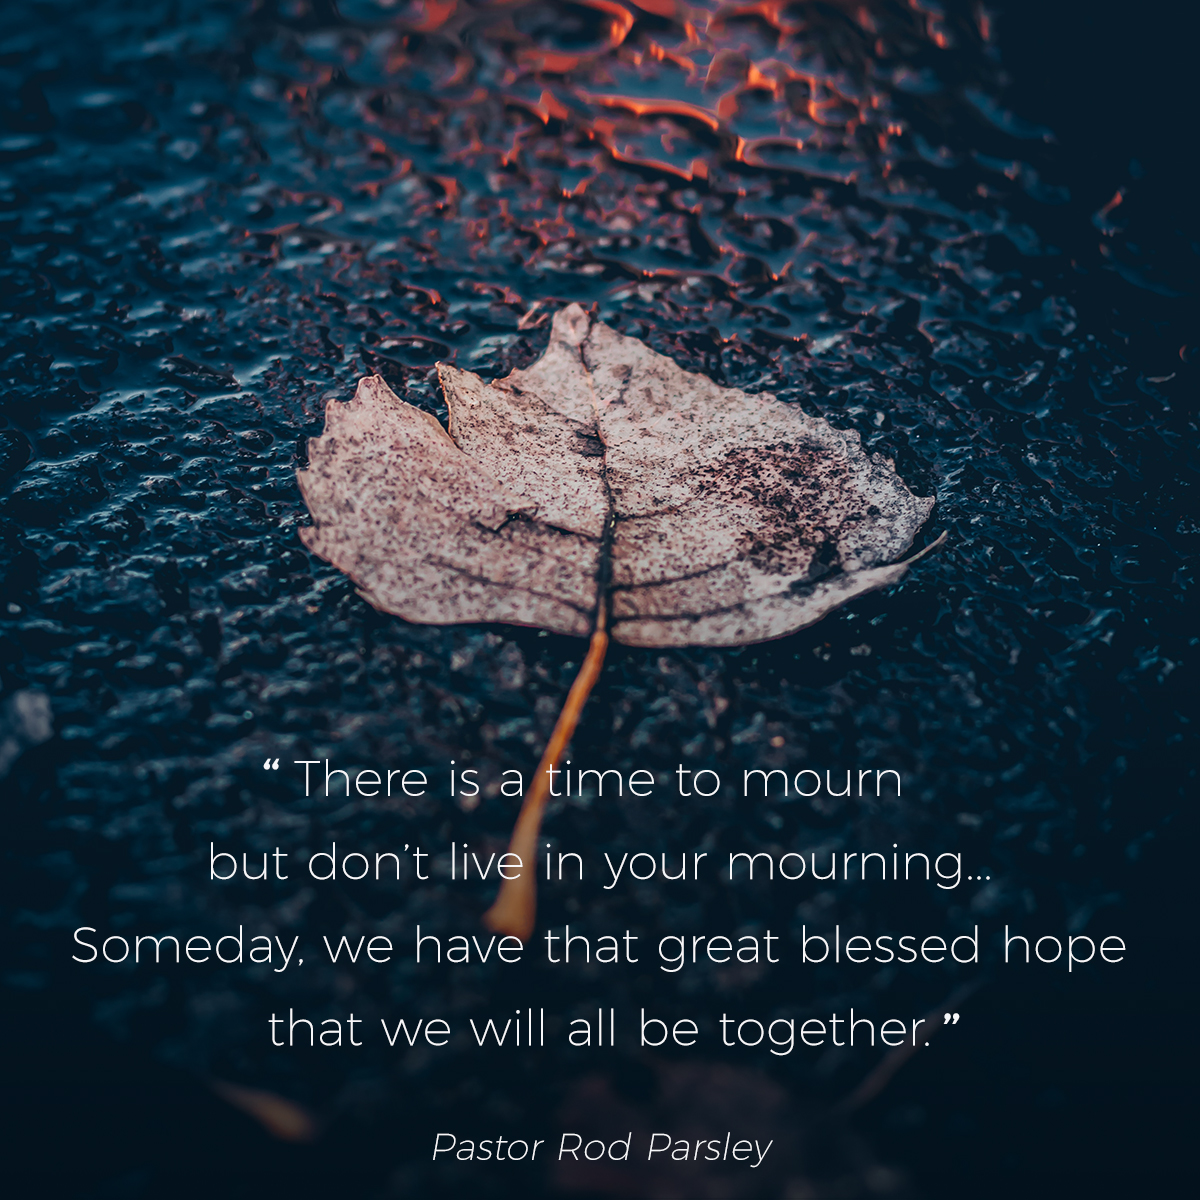 """There is a time to mourn but don't live in your mourning … Someday, we have that great blessed hope that we will all be together."" – Pastor Rod Parsley"